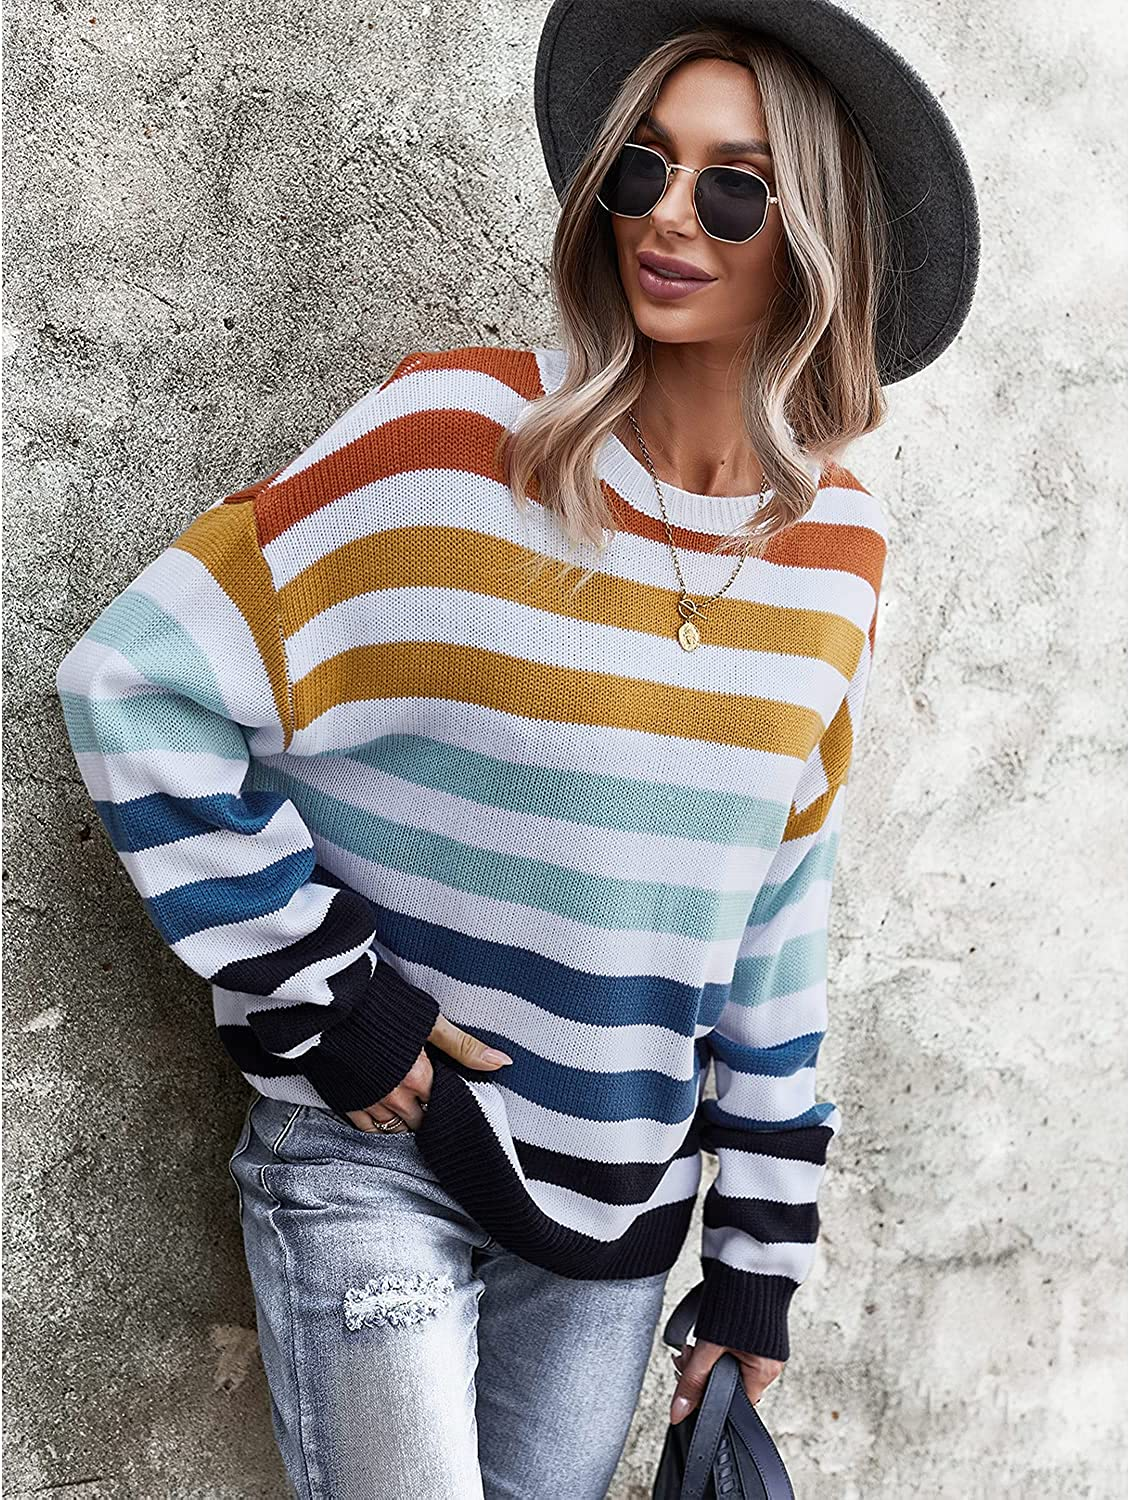 BROVEVA Women's Casual Long Sleeve Crewneck Striped Color Block Loose Knit Sweaters Pullover Tops